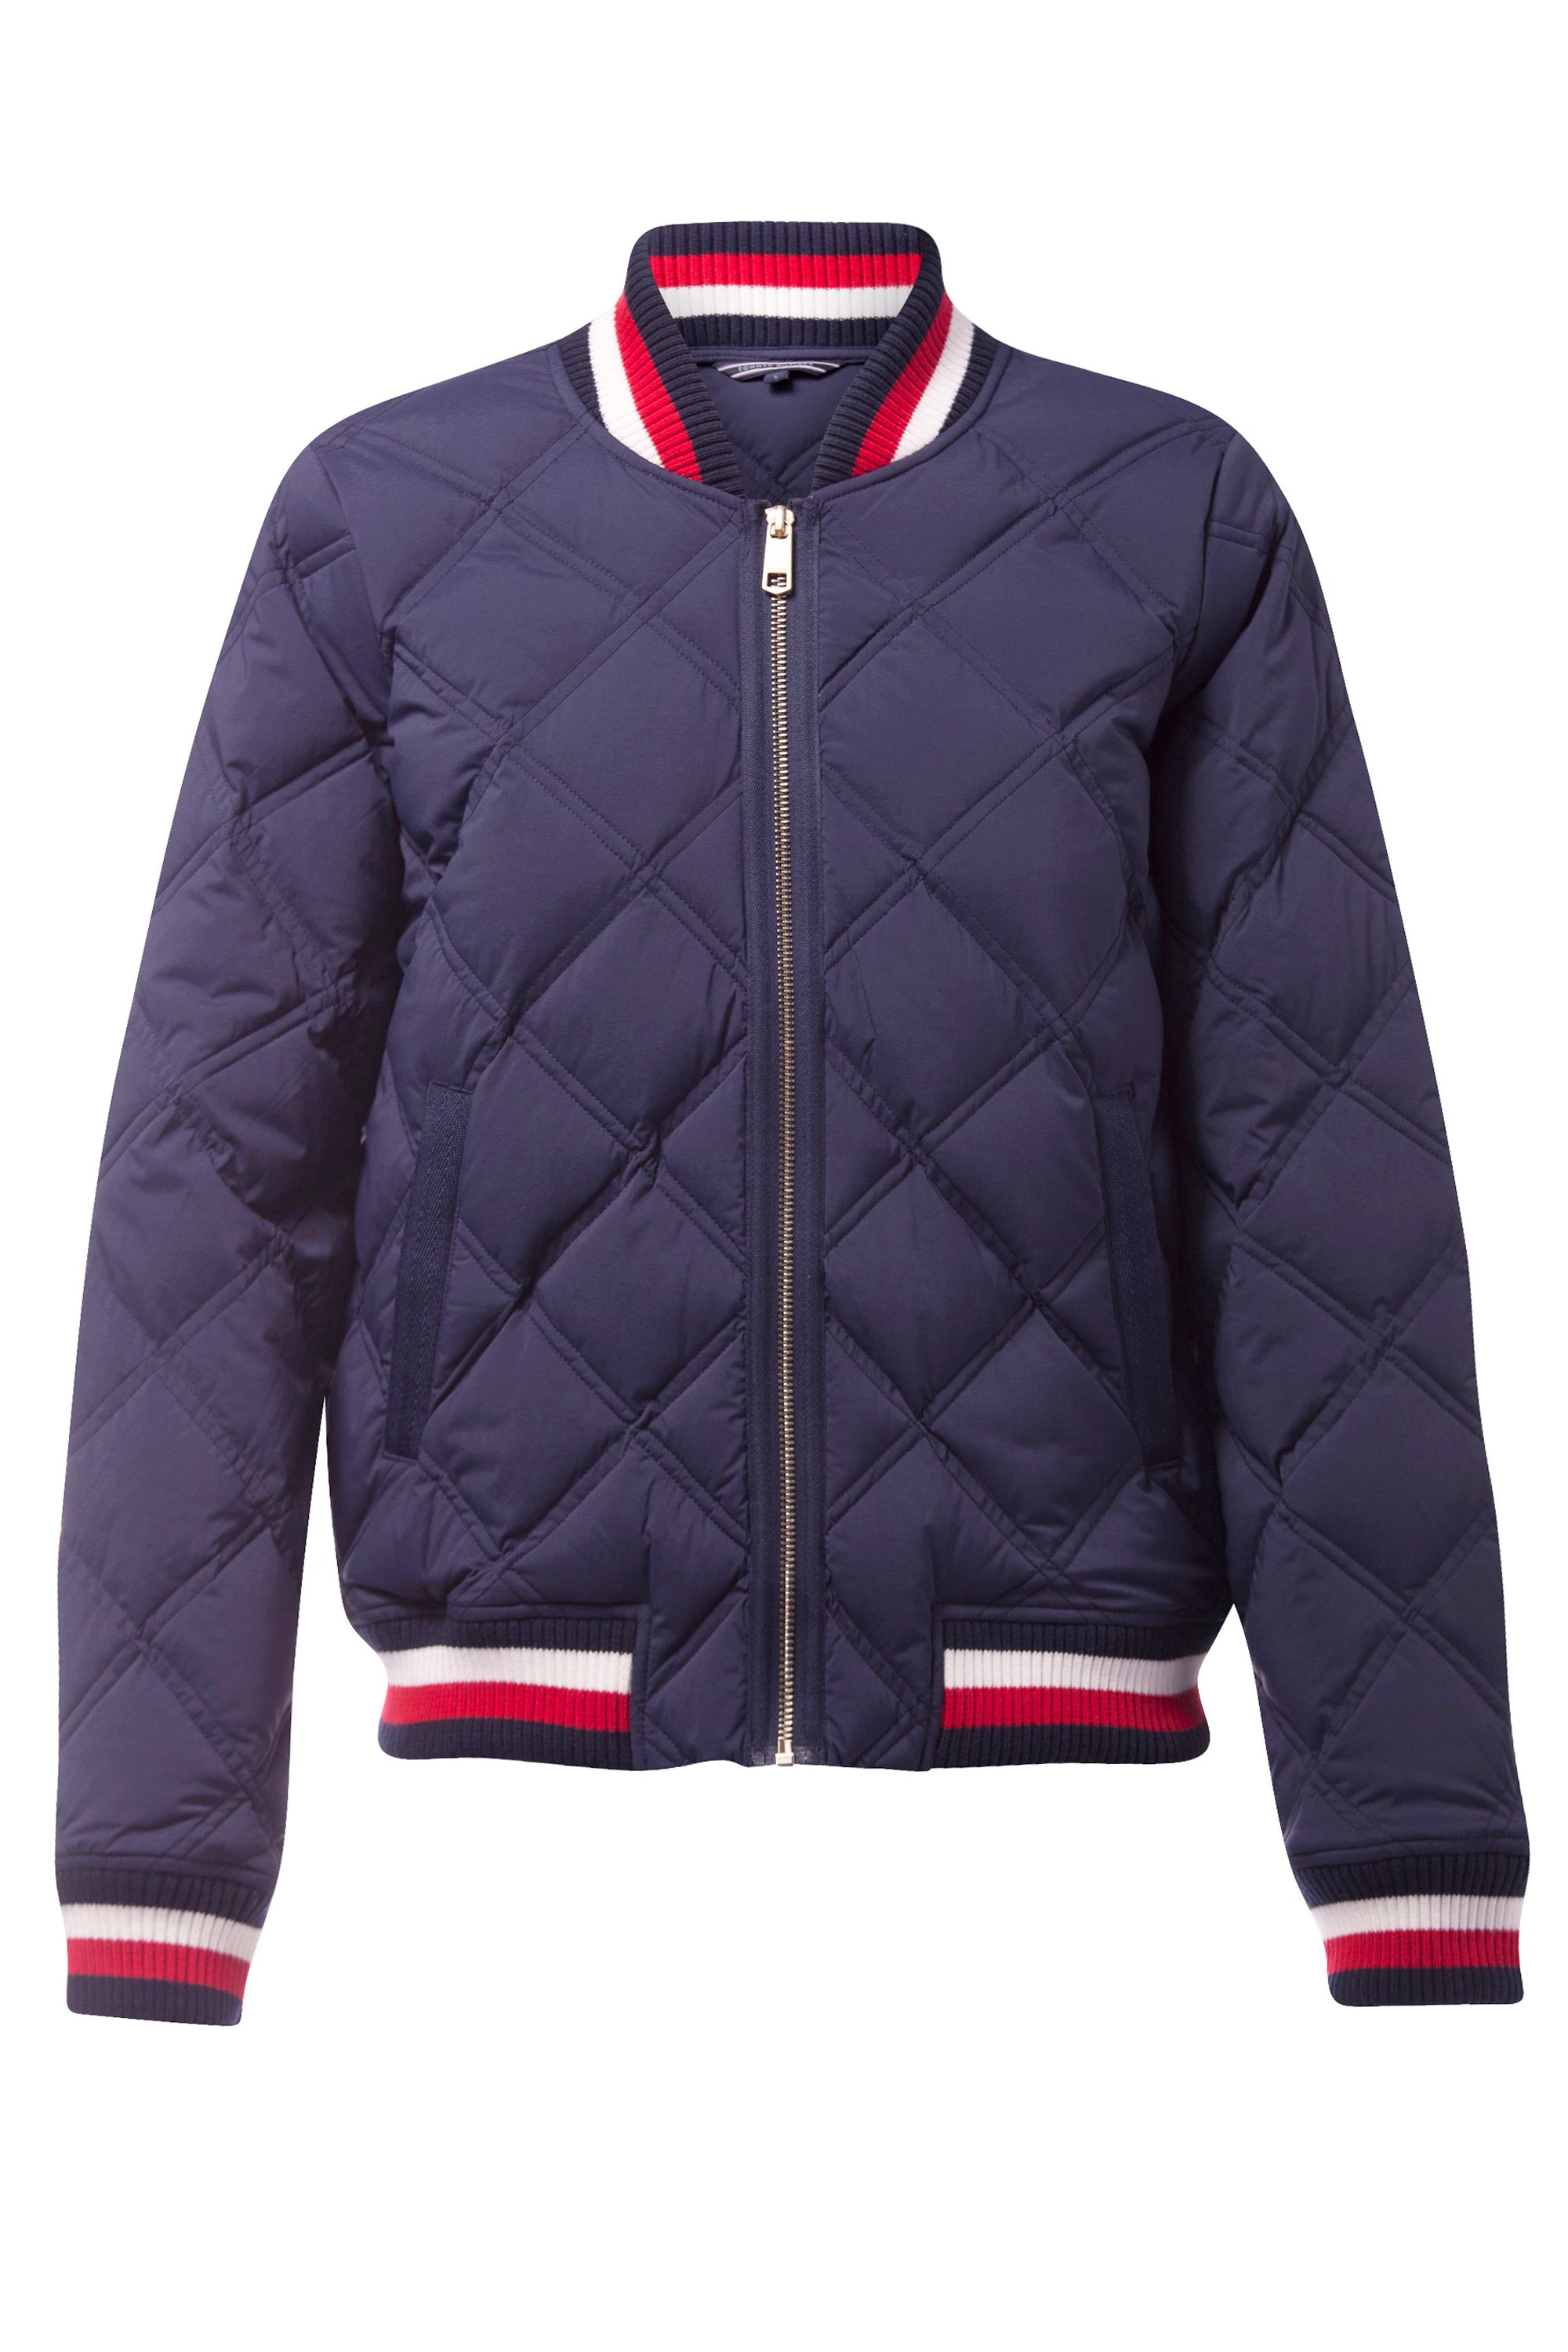 Tommy Hilfiger Blake Stretch Down Bomber Jacket, Blue